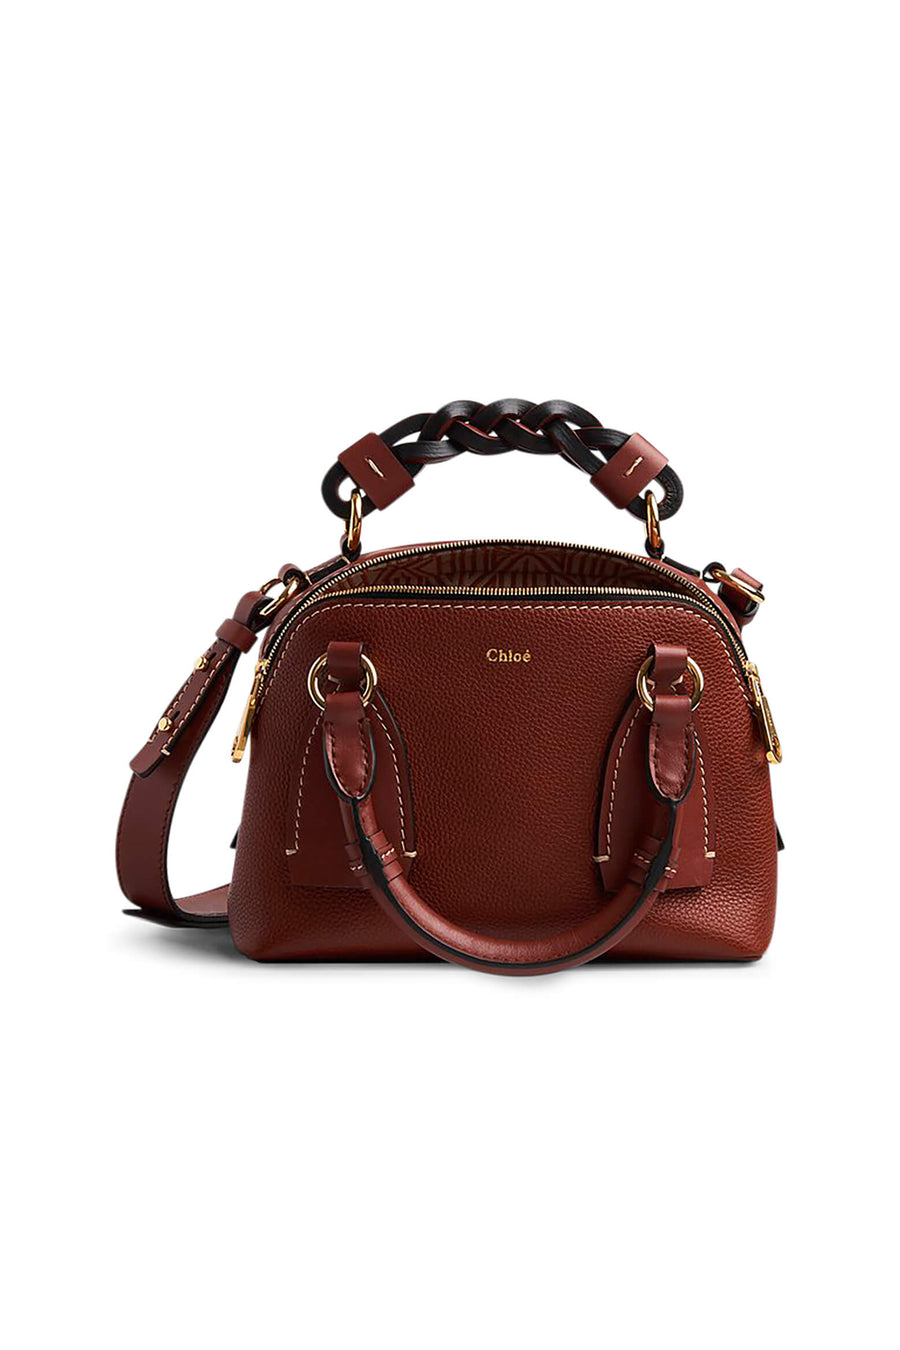 Chloe Daria Small Bag in Sepia Brown from The New Trend